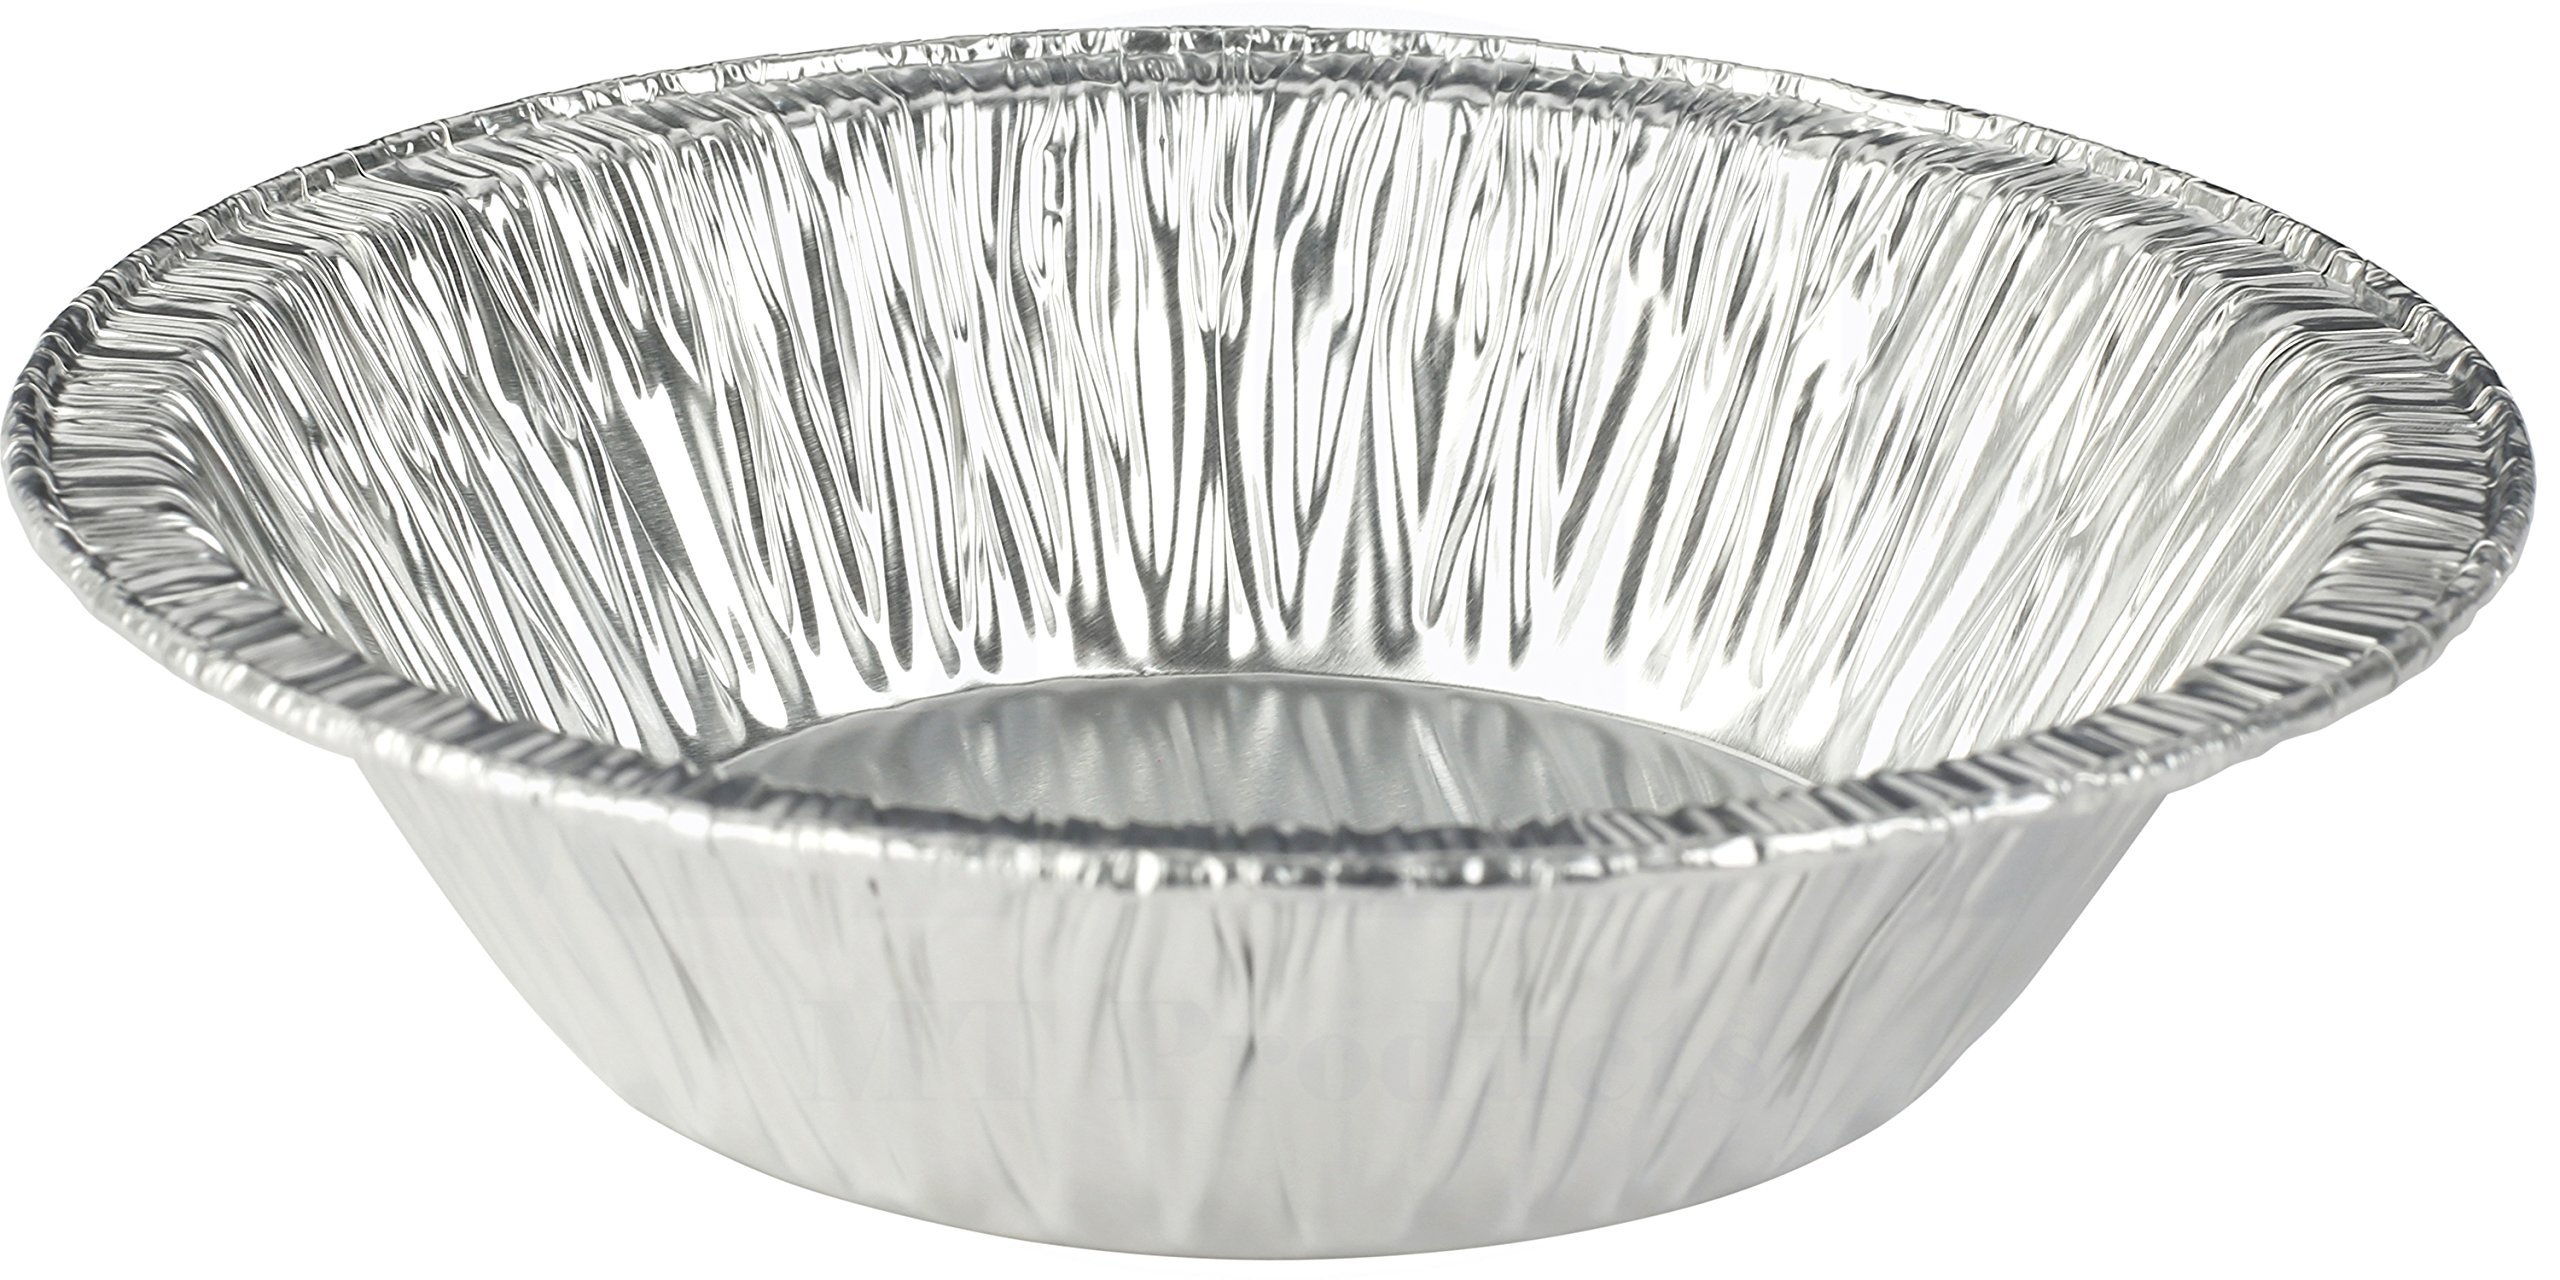 MT Products 5 Inch Disposable Aluminum Foil Tart/Pie Pan 1 1/4'' Deep - (50 Pieces)